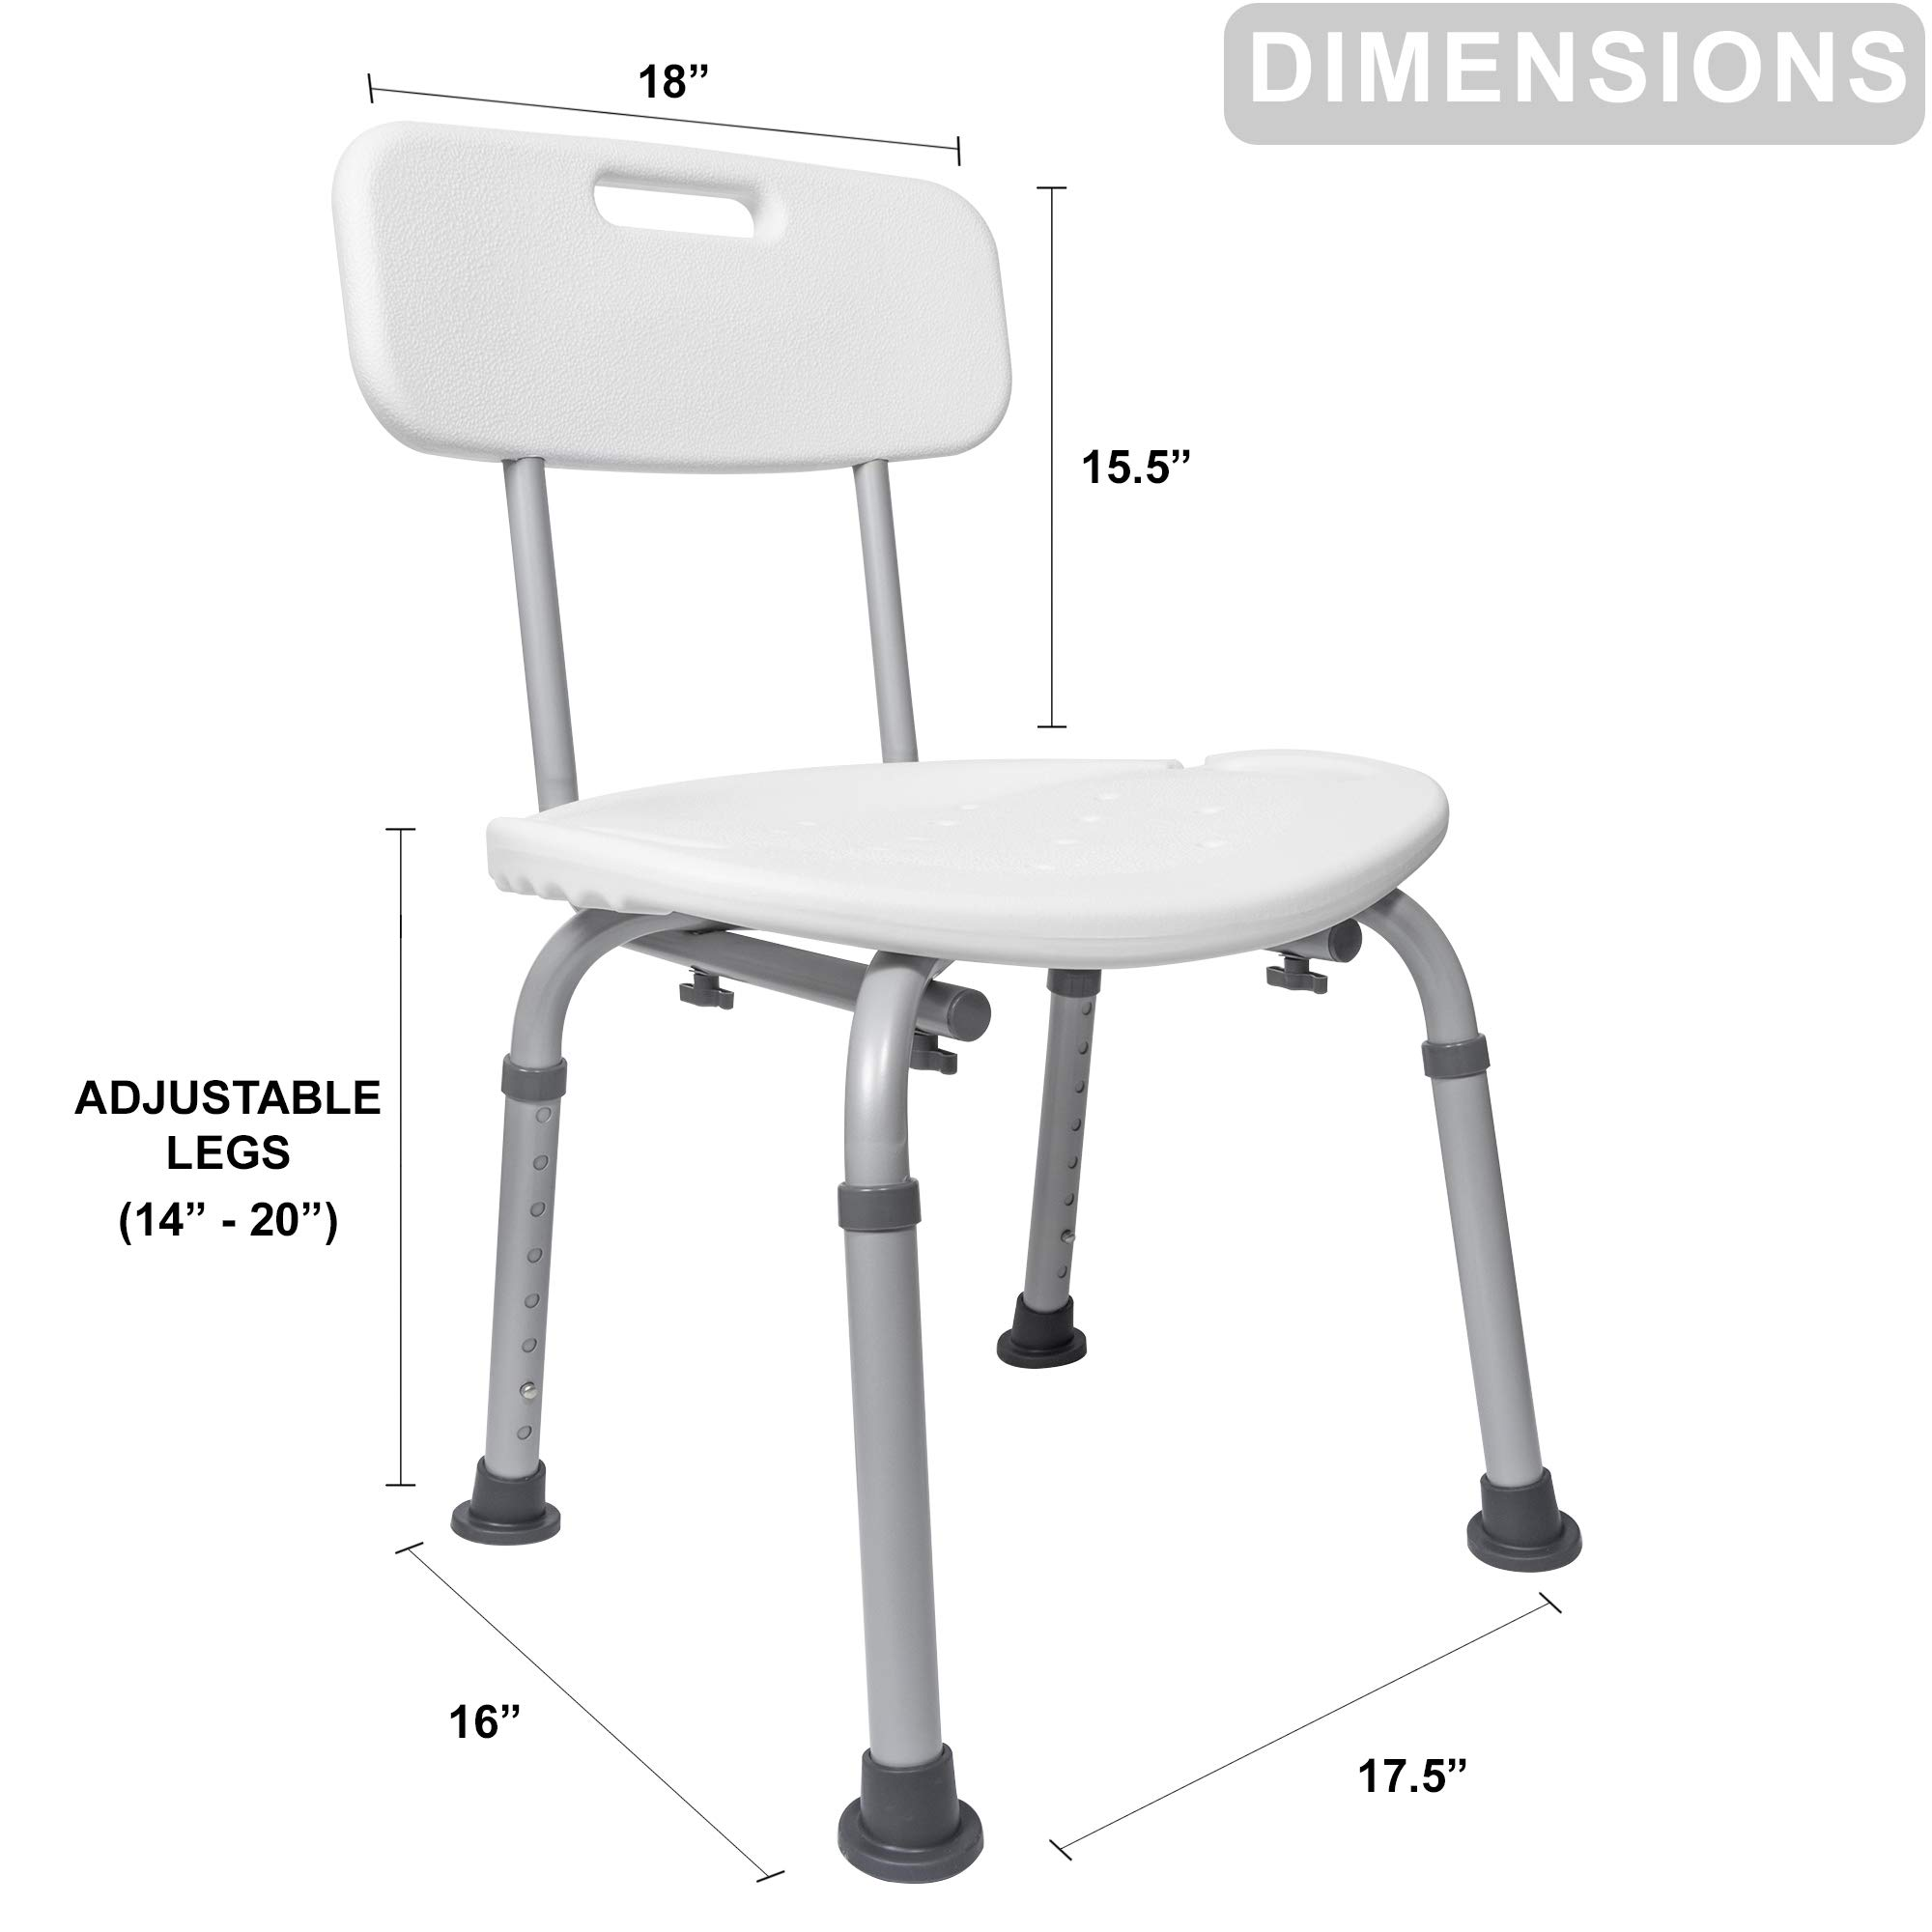 Medical Tool-Free Assembly Spa Bathtub Adjustable Carex Shower Chair Seat Bench with Removable Back by Vaunn (Image #6)